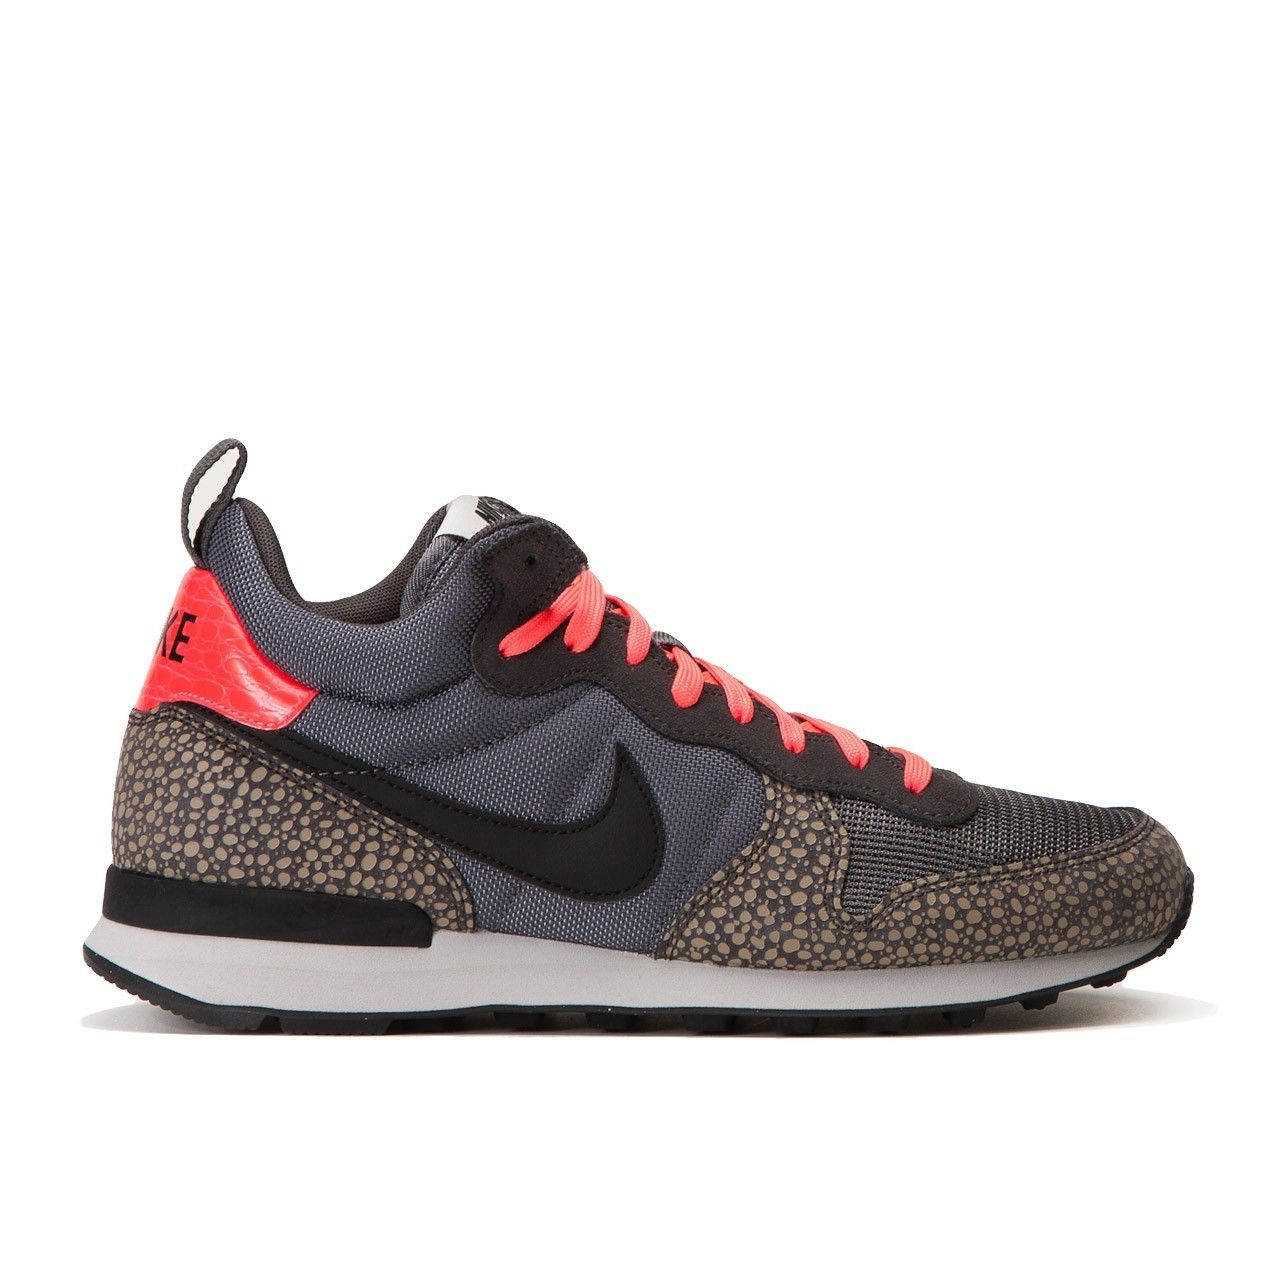 Online Sale-Outlet - Dames Schoenen - Nike Internationalist ...